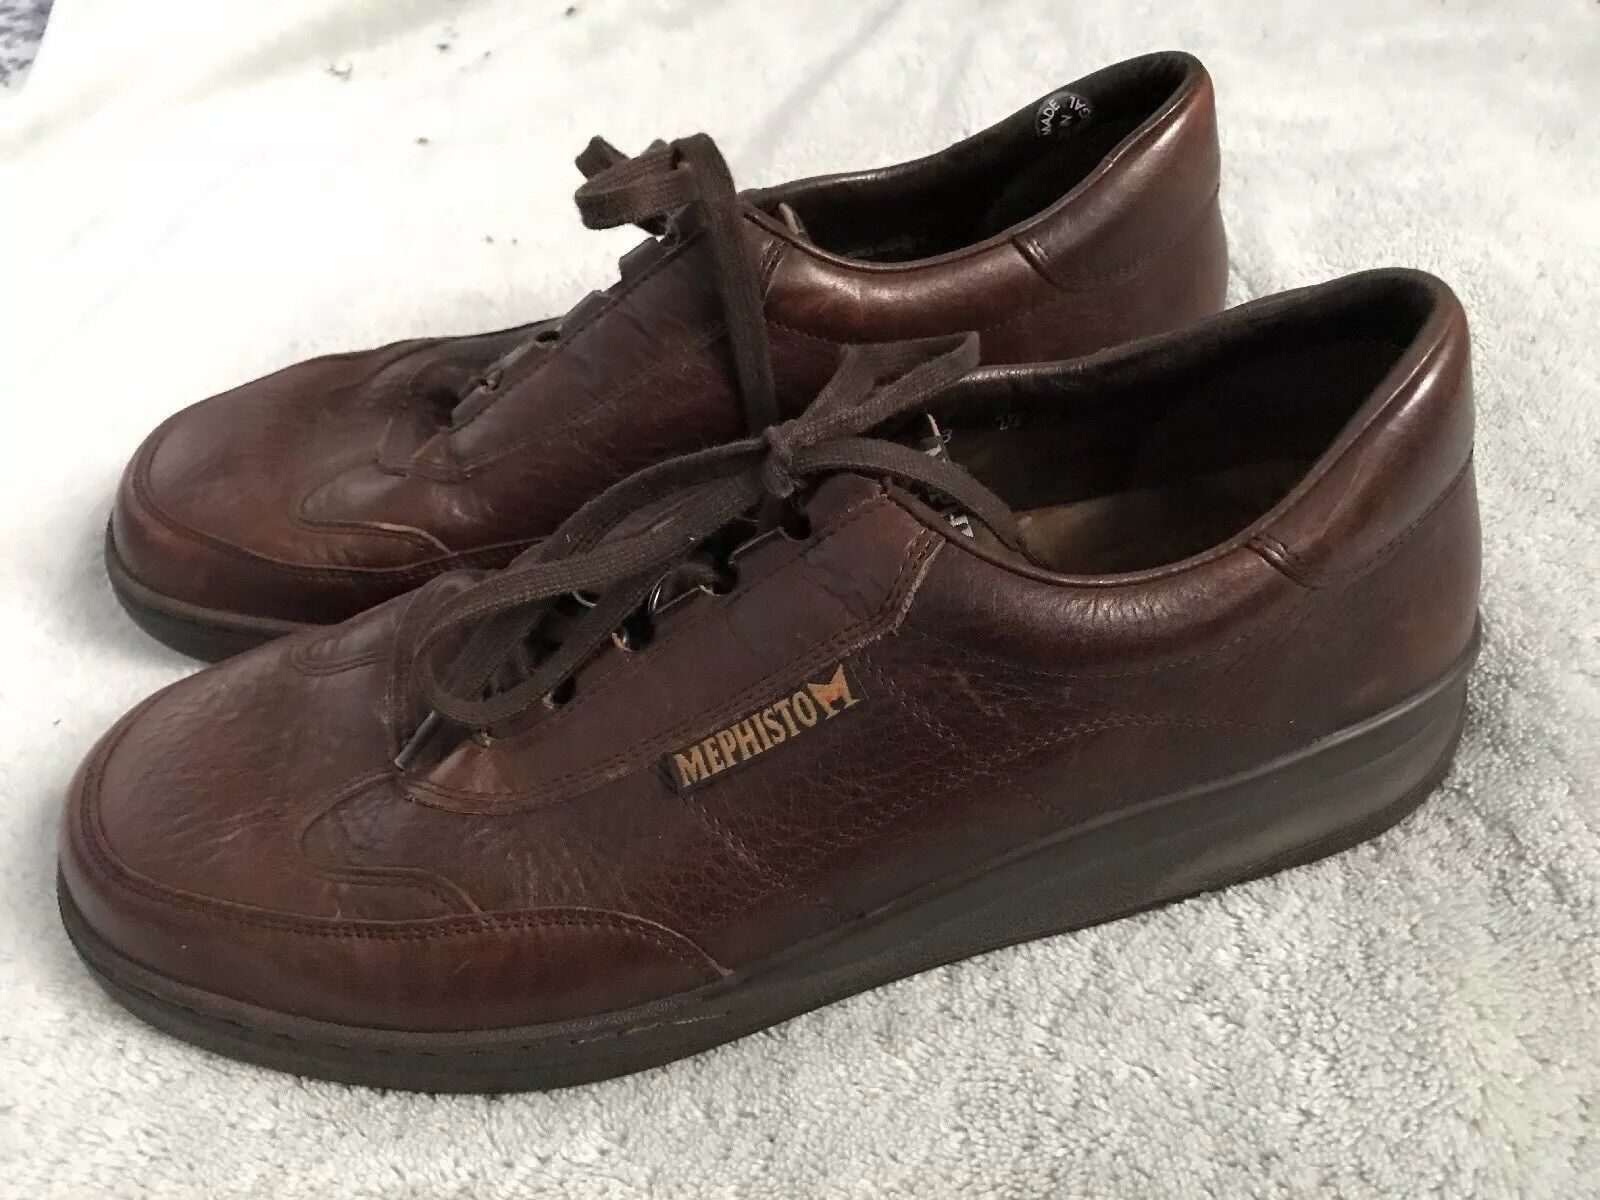 Mephisto Runoff  Mens Sz 11.5 Brown Leather Casual Lace Up Walking shoes SC8